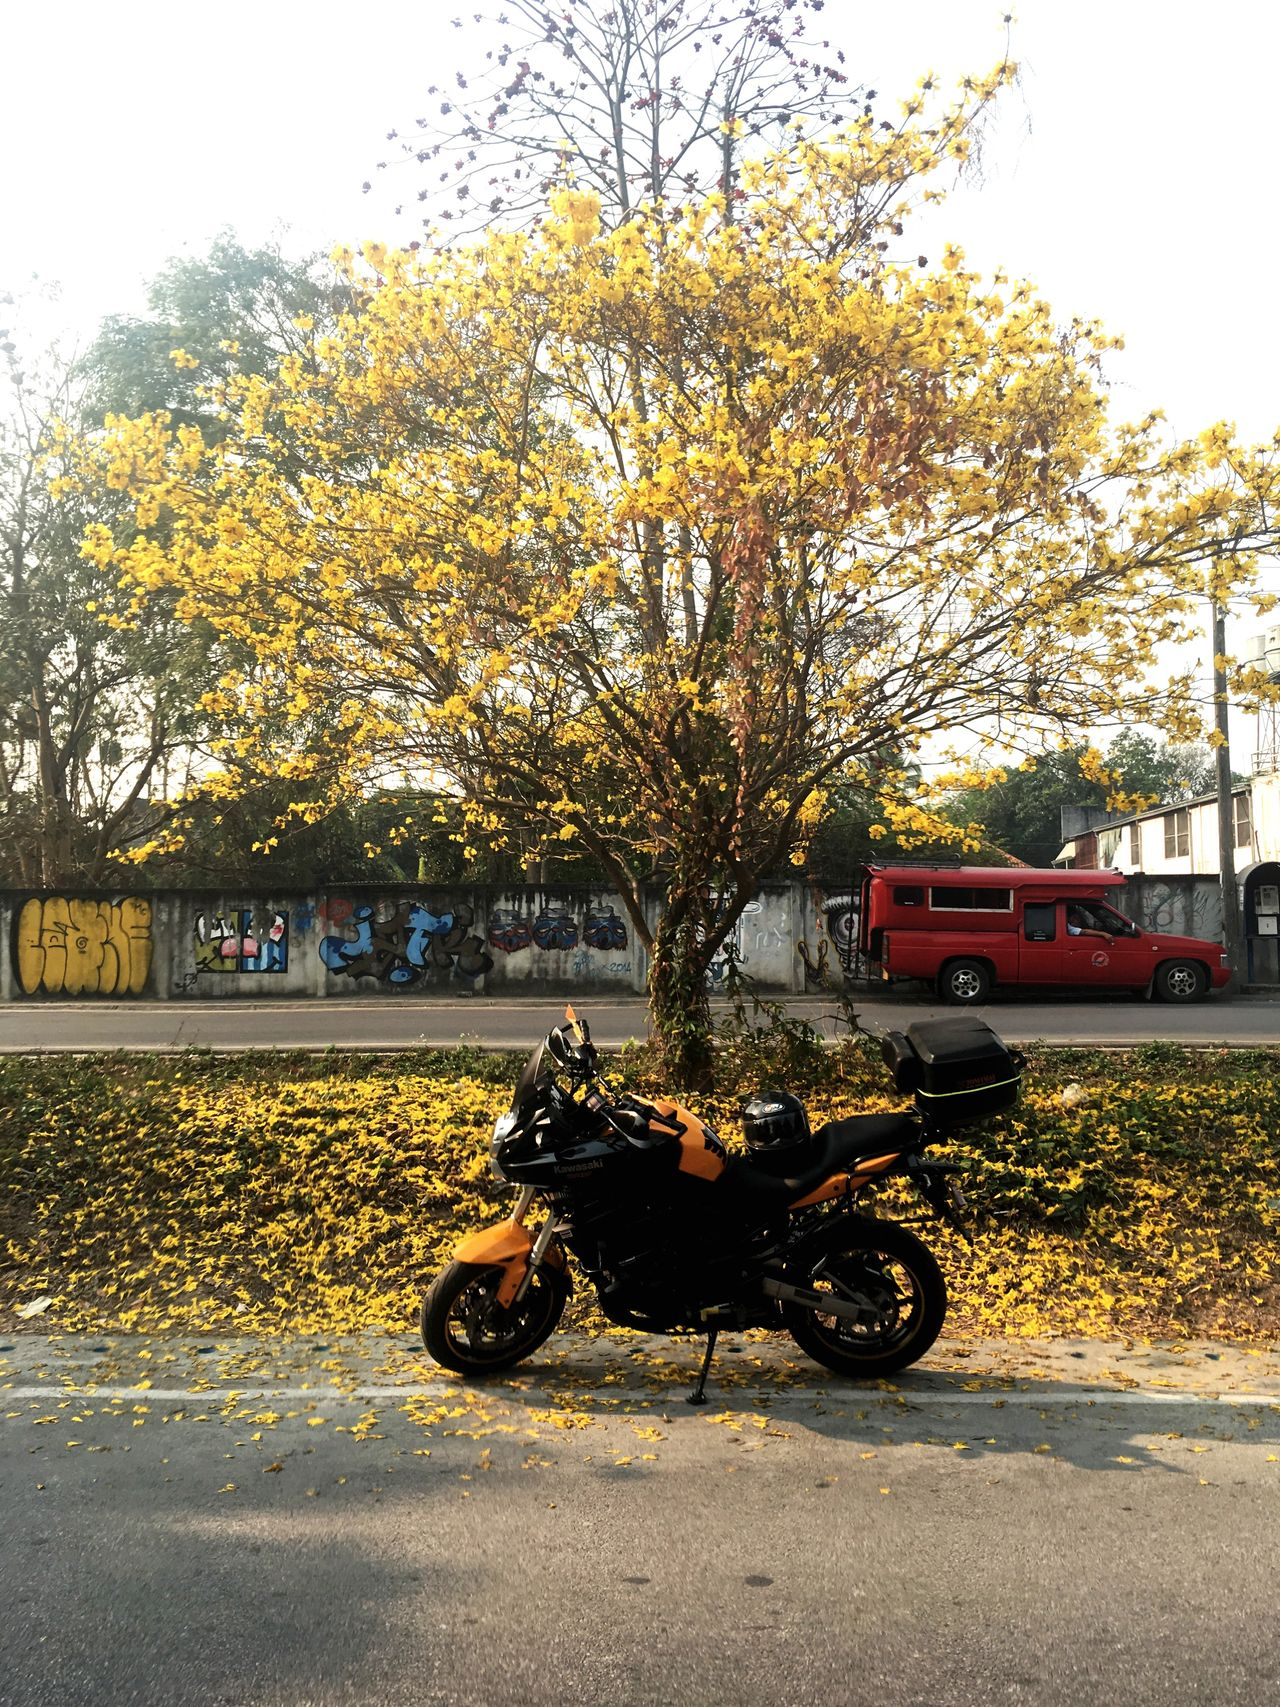 Summer flower Yellow Flower Tree Motorcycle Road Outdoors Day No People